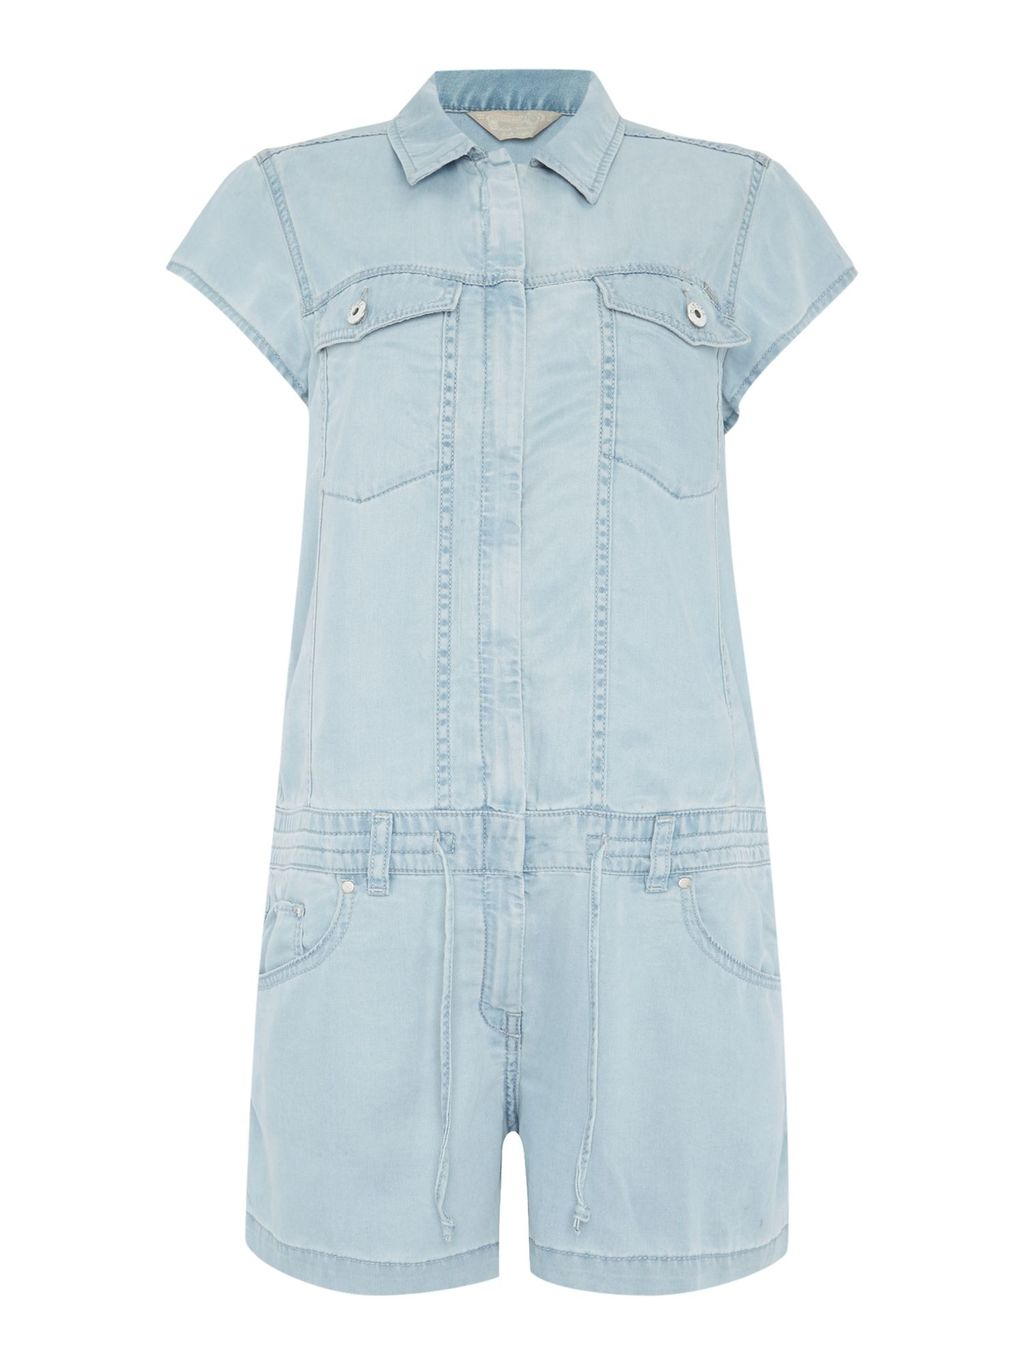 De Sade Playsuit, Blue - neckline: shirt collar/peter pan/zip with opening; pattern: plain; length: short shorts; predominant colour: pale blue; occasions: casual; fit: body skimming; sleeve length: short sleeve; sleeve style: standard; texture group: denim; style: playsuit; pattern type: fabric; fibres: viscose/rayon - mix; season: s/s 2016; wardrobe: highlight